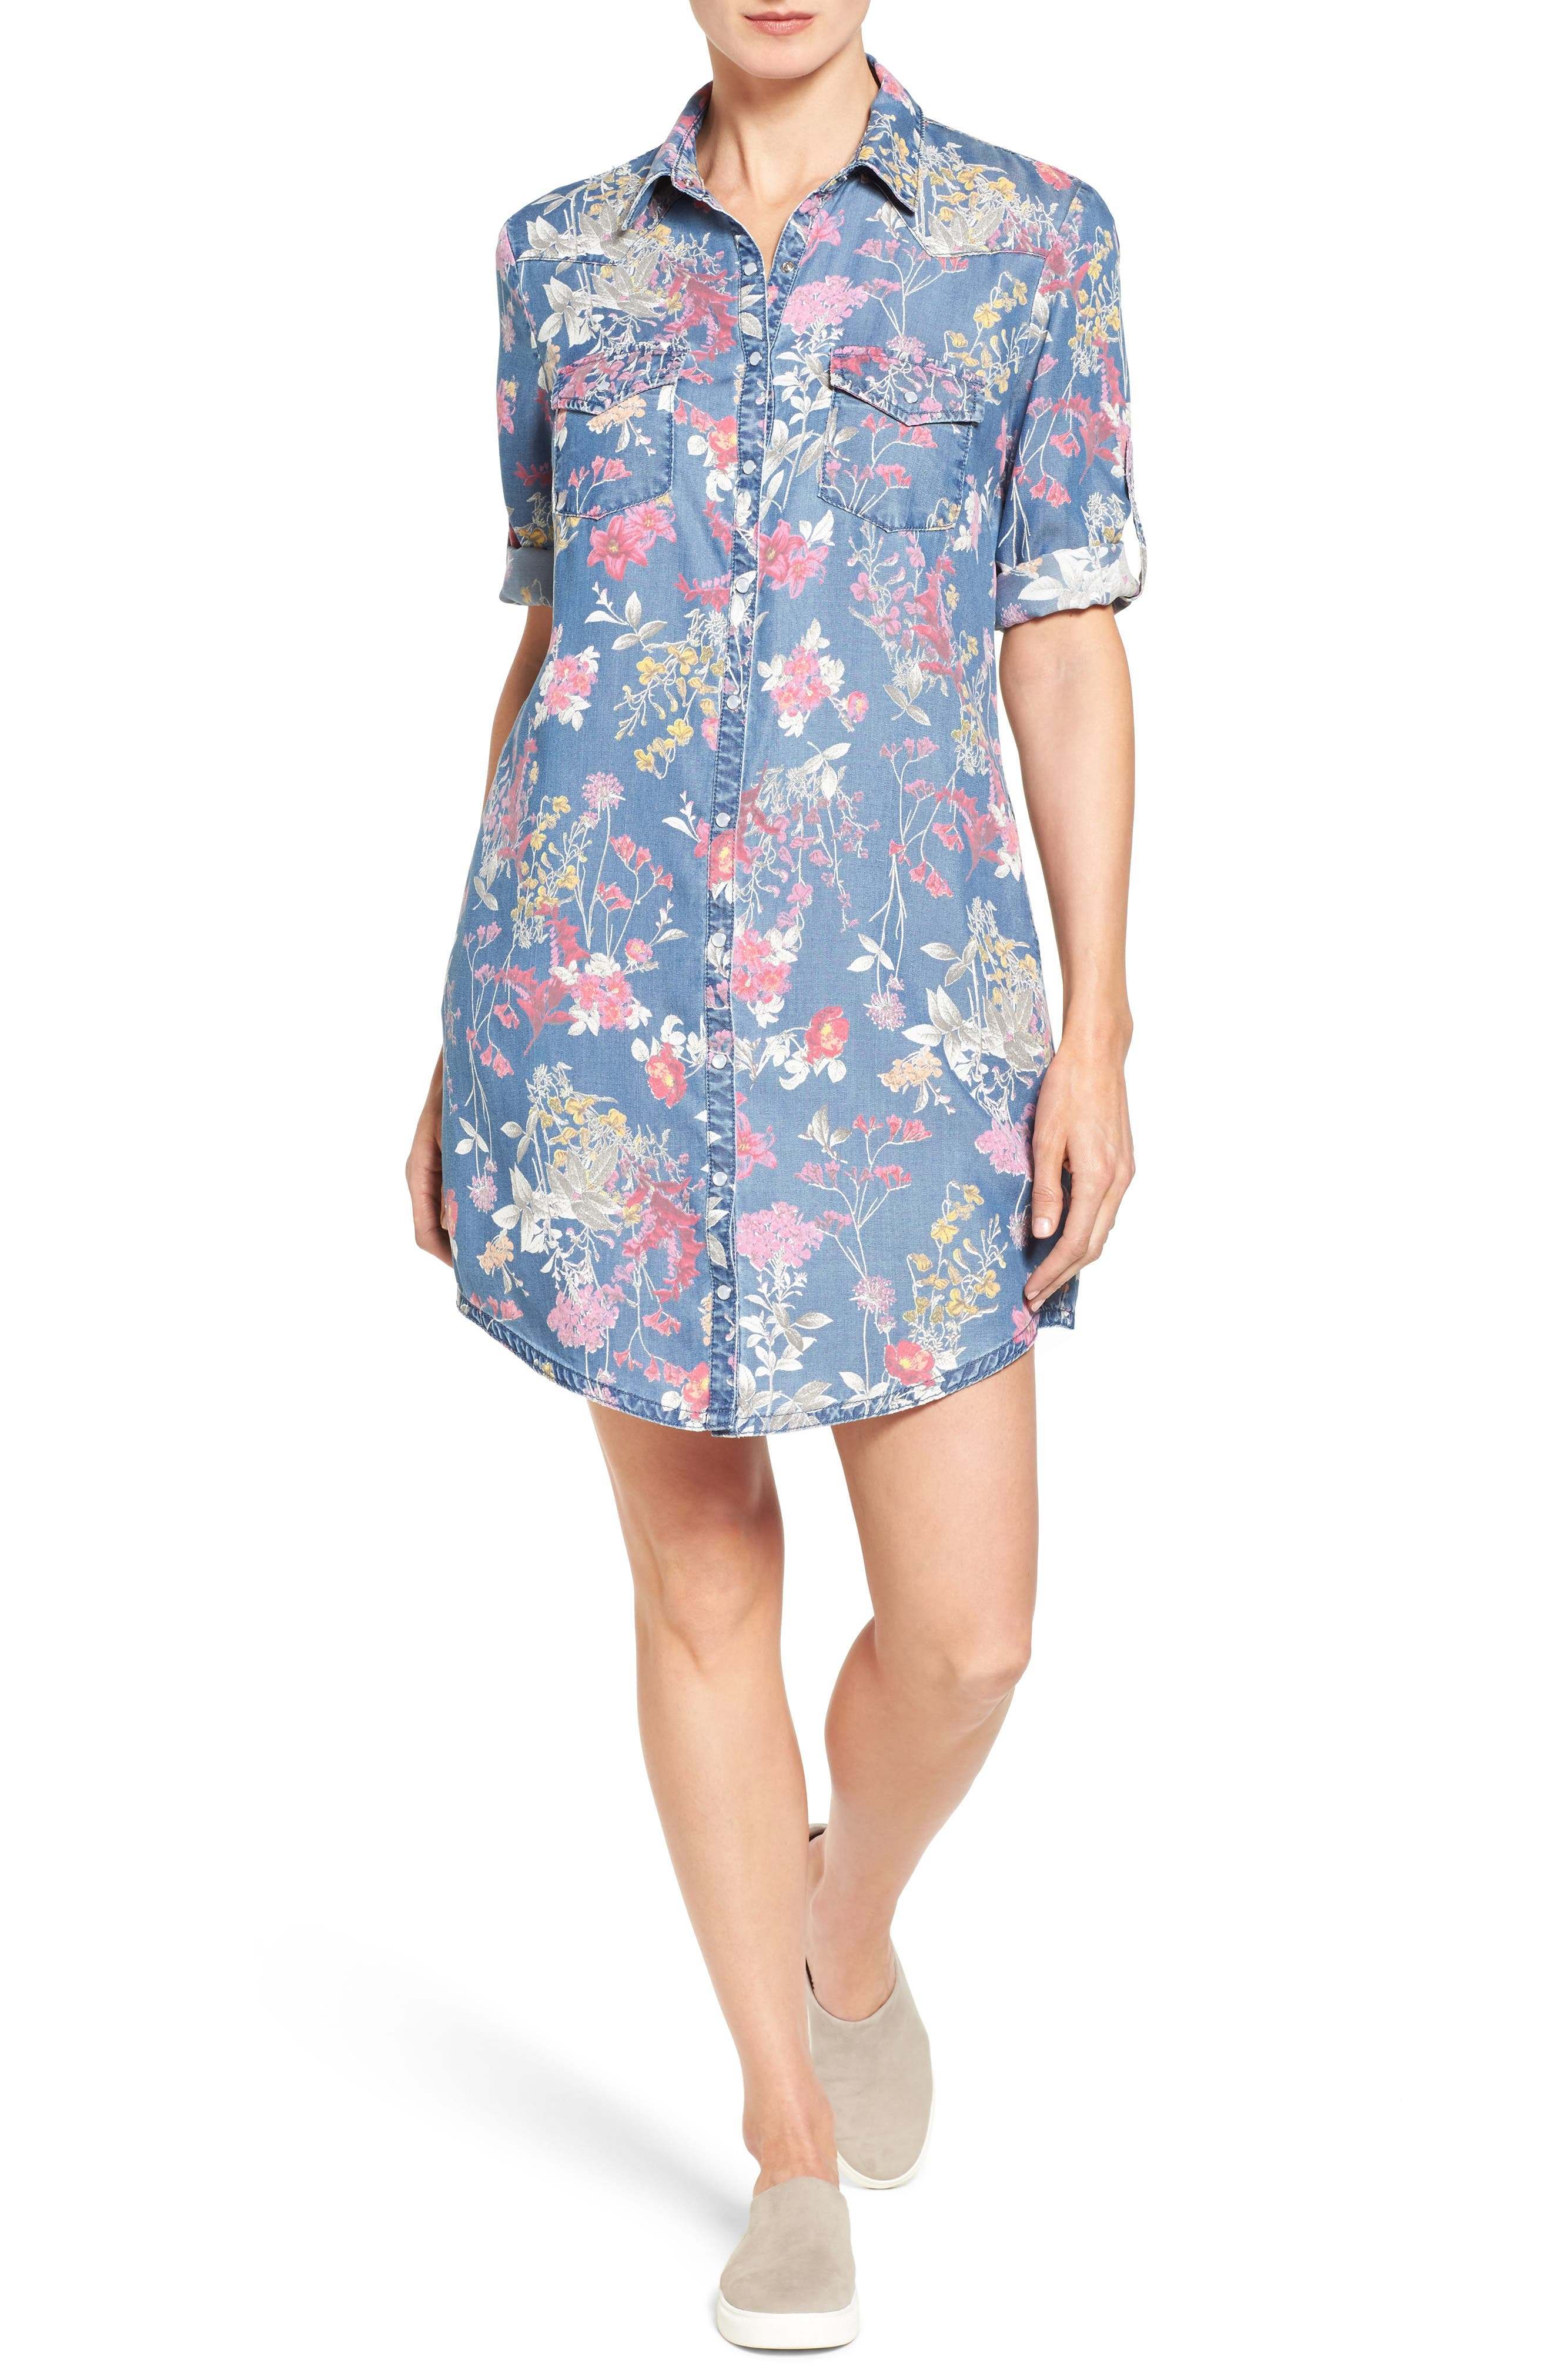 KUT FROM THE KLOTH Ruthy Floral Print Shirtdress